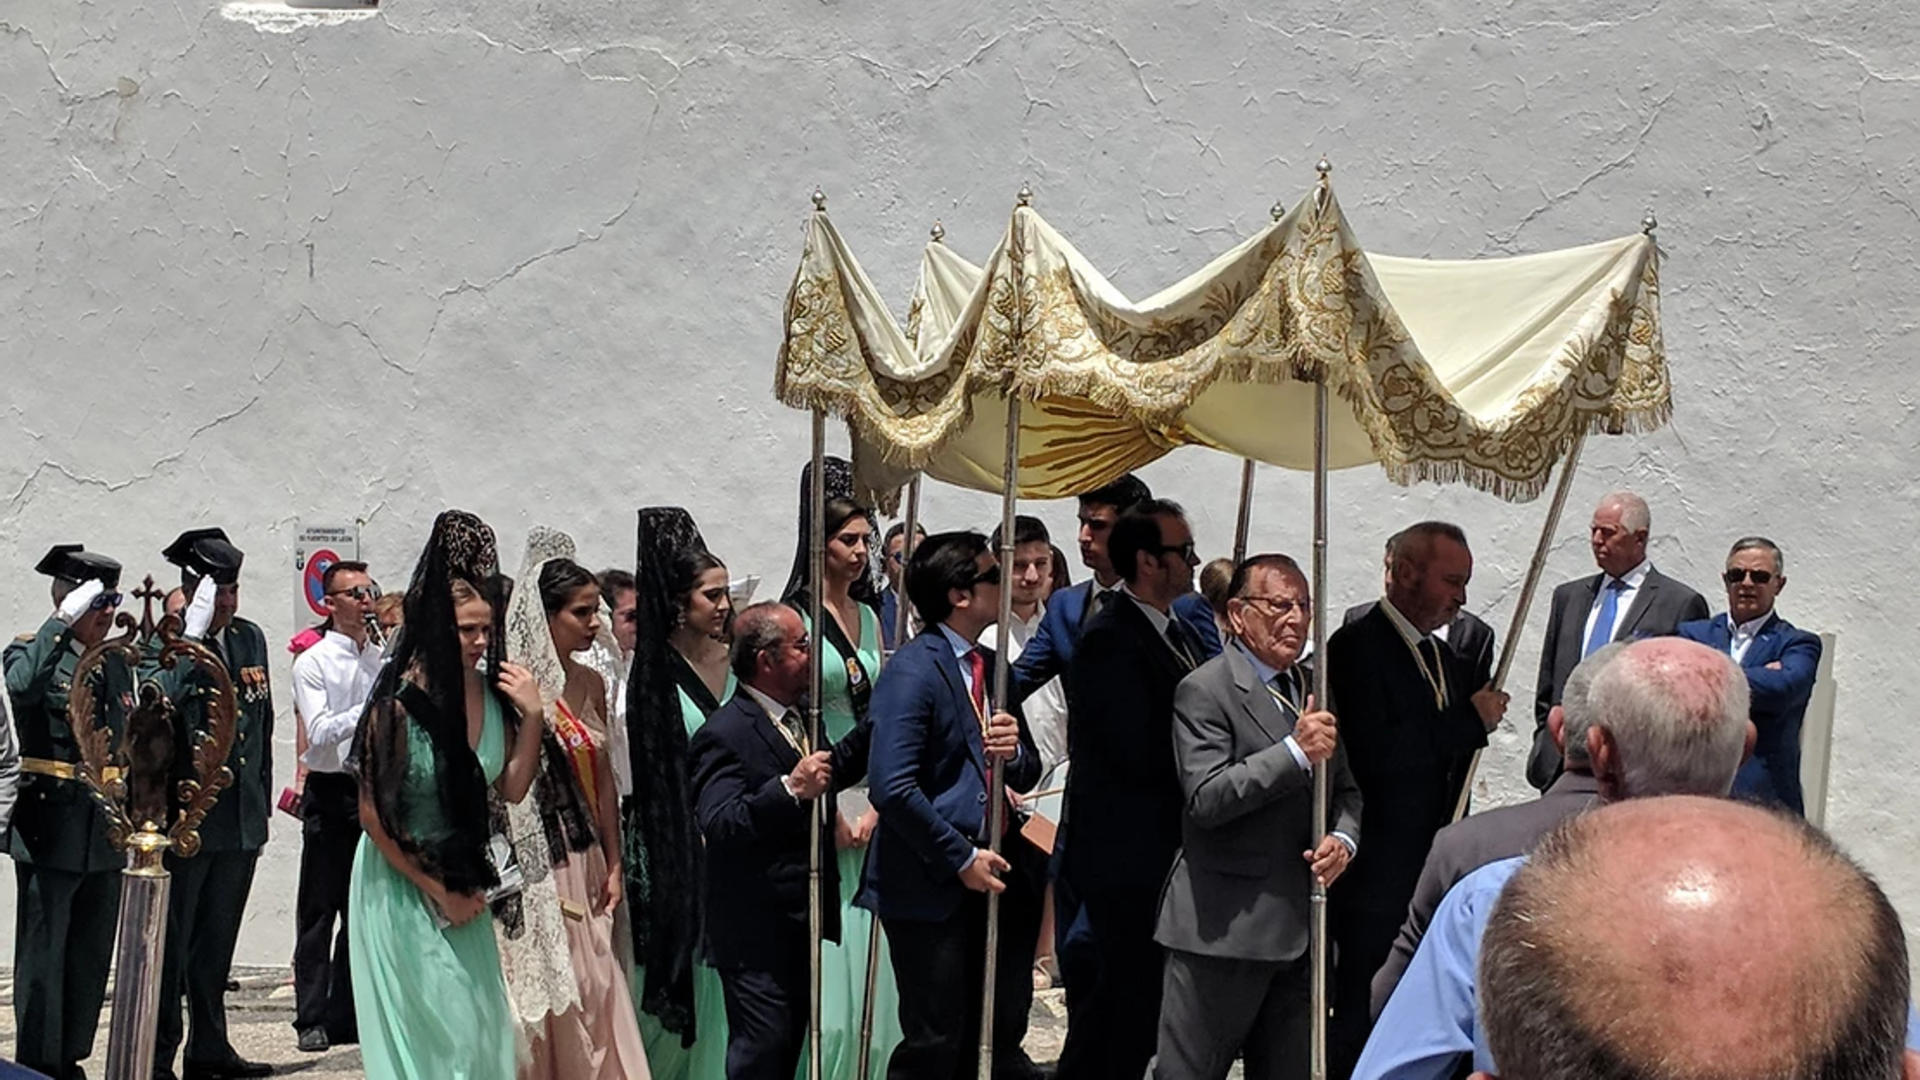 Locals taking part in Fuentes de León's Corpus Christi parade in 2019 - the last held before Covid - Credit: Peter Barron